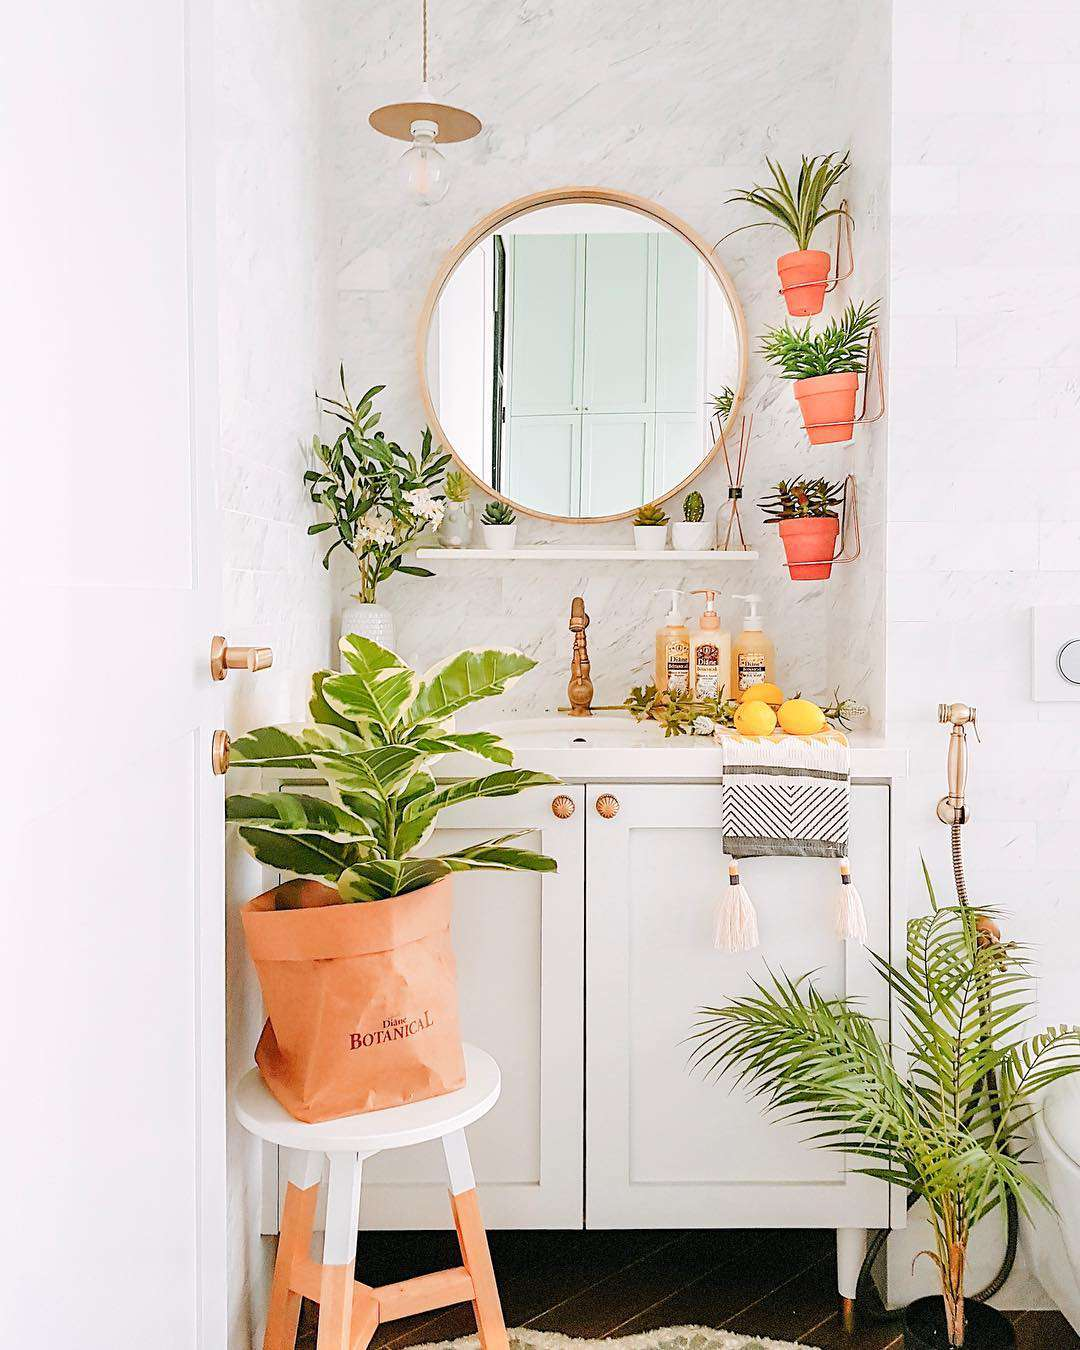 Plants next to sink